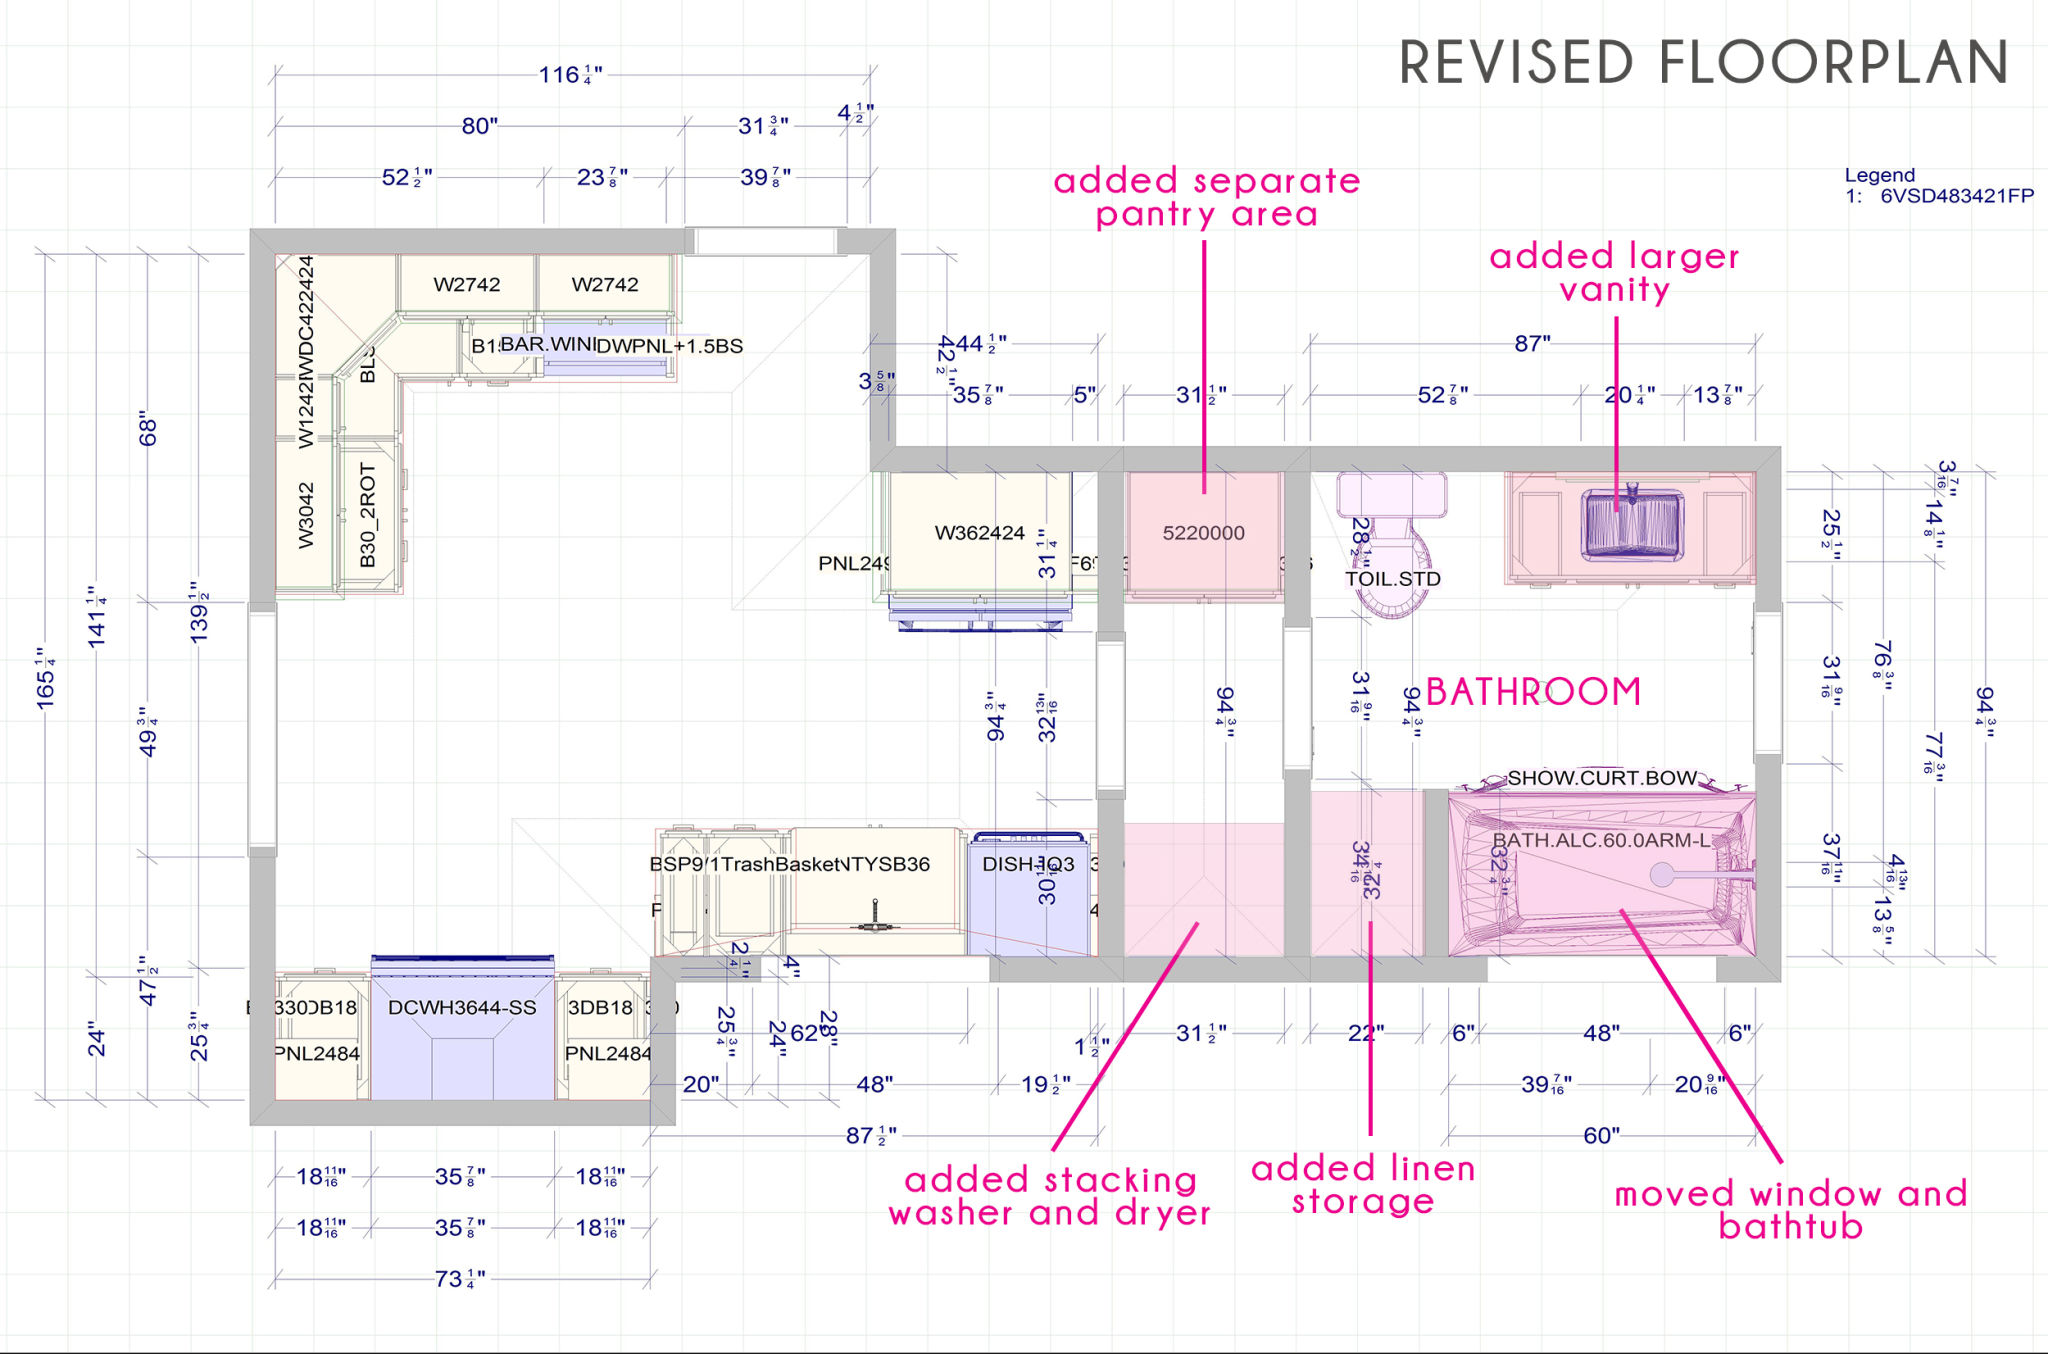 Bathroom_Storage_Drawing_Ginny_Macdonald_Floor-Plan-1024x677@2x